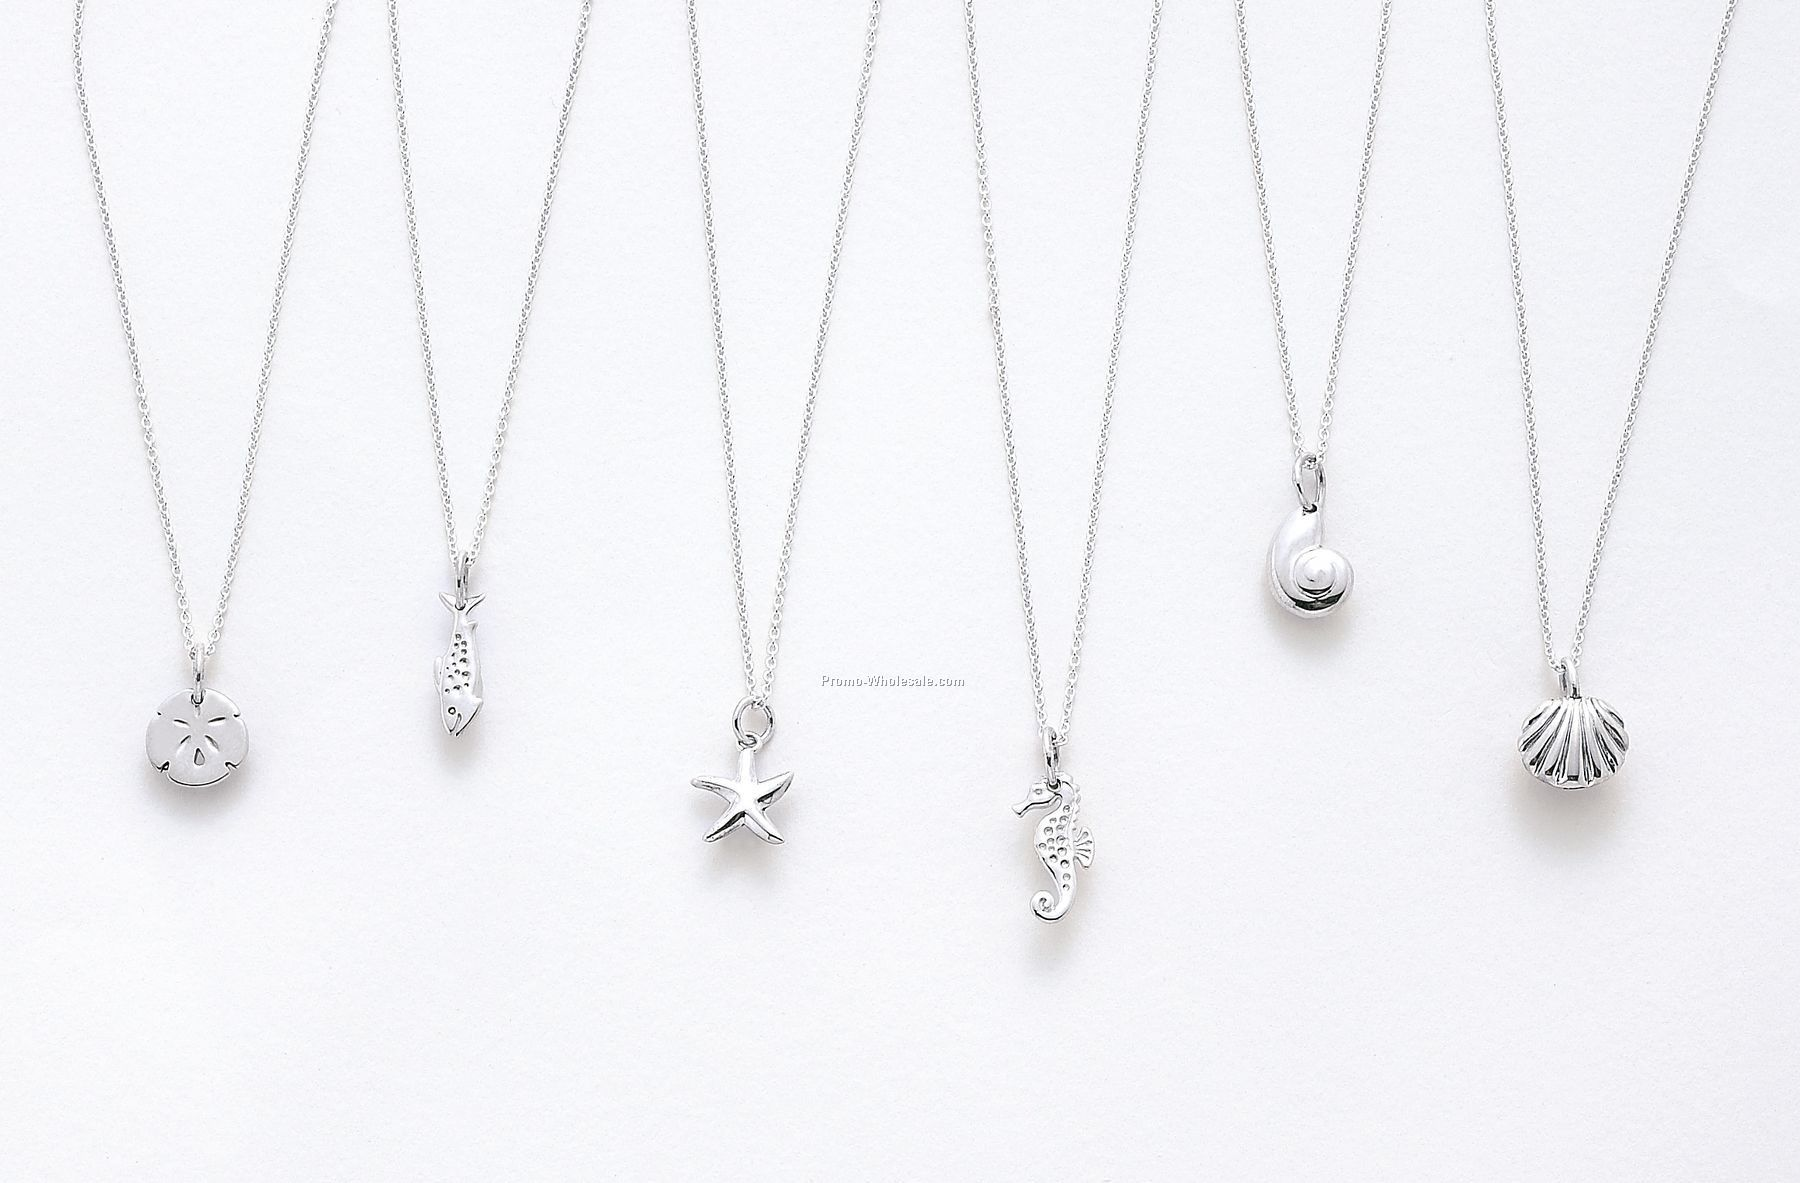 Silver chains for pendants light images light ideas pendantschina wholesale pendants plated silver sealife series pendant on cable chain w custom phrase logo audiocablefo mozeypictures Gallery